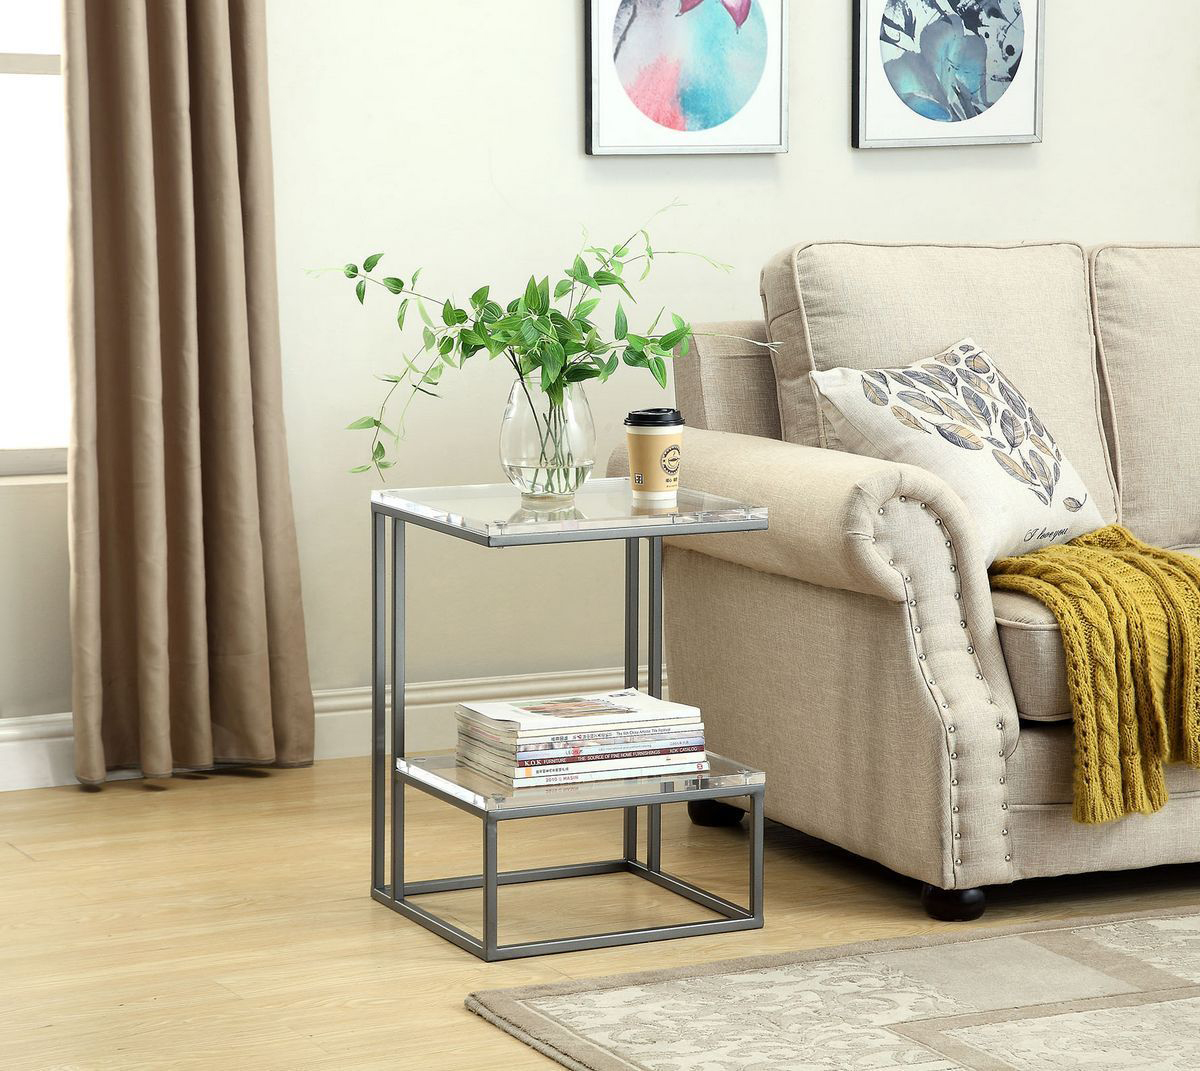 Lexi Clear finish will add a clean and modern look to any room